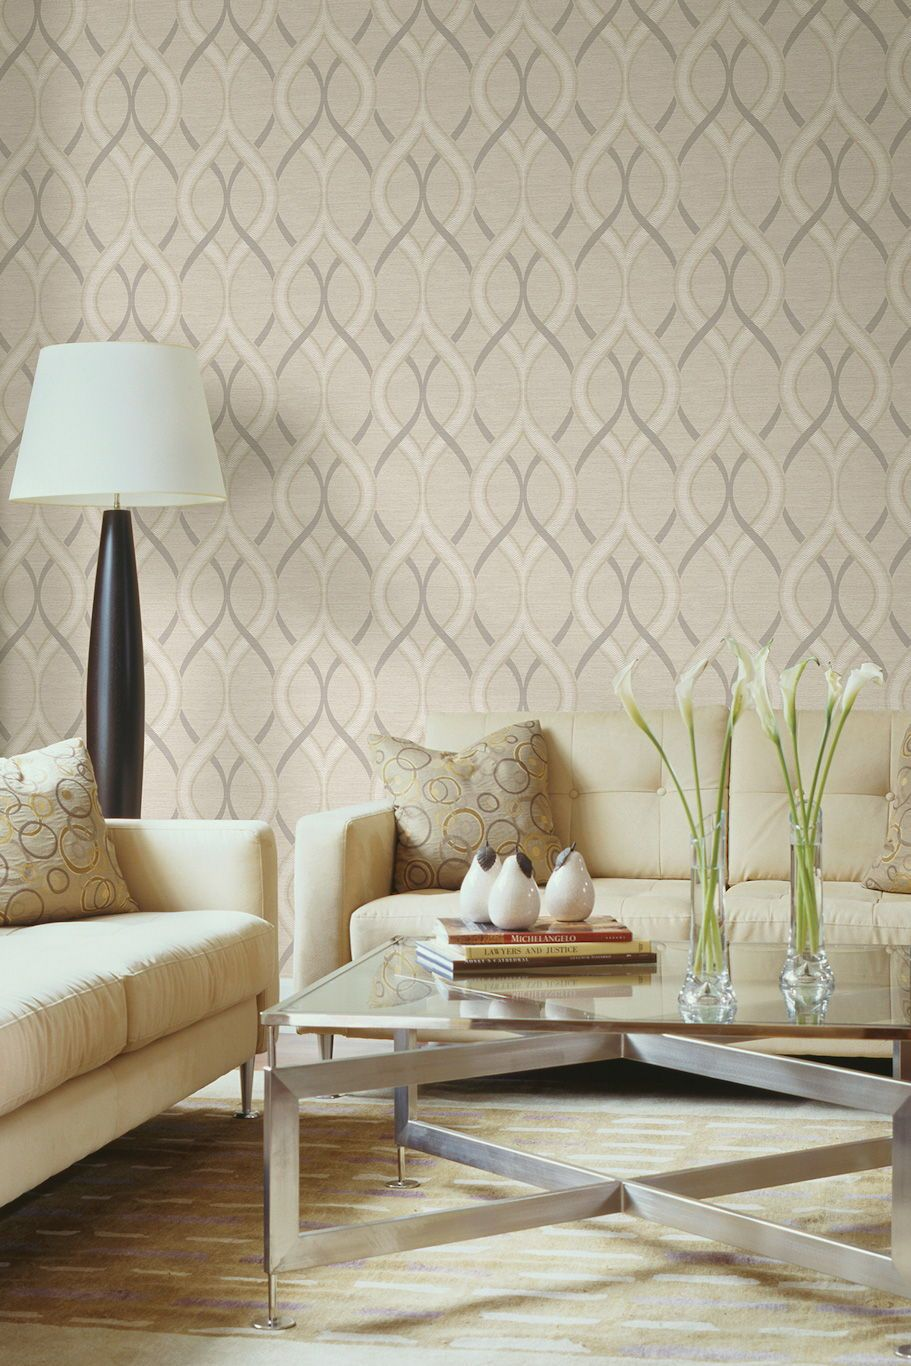 Frequency Wallpaper Design From The Albany Symmetry Collec